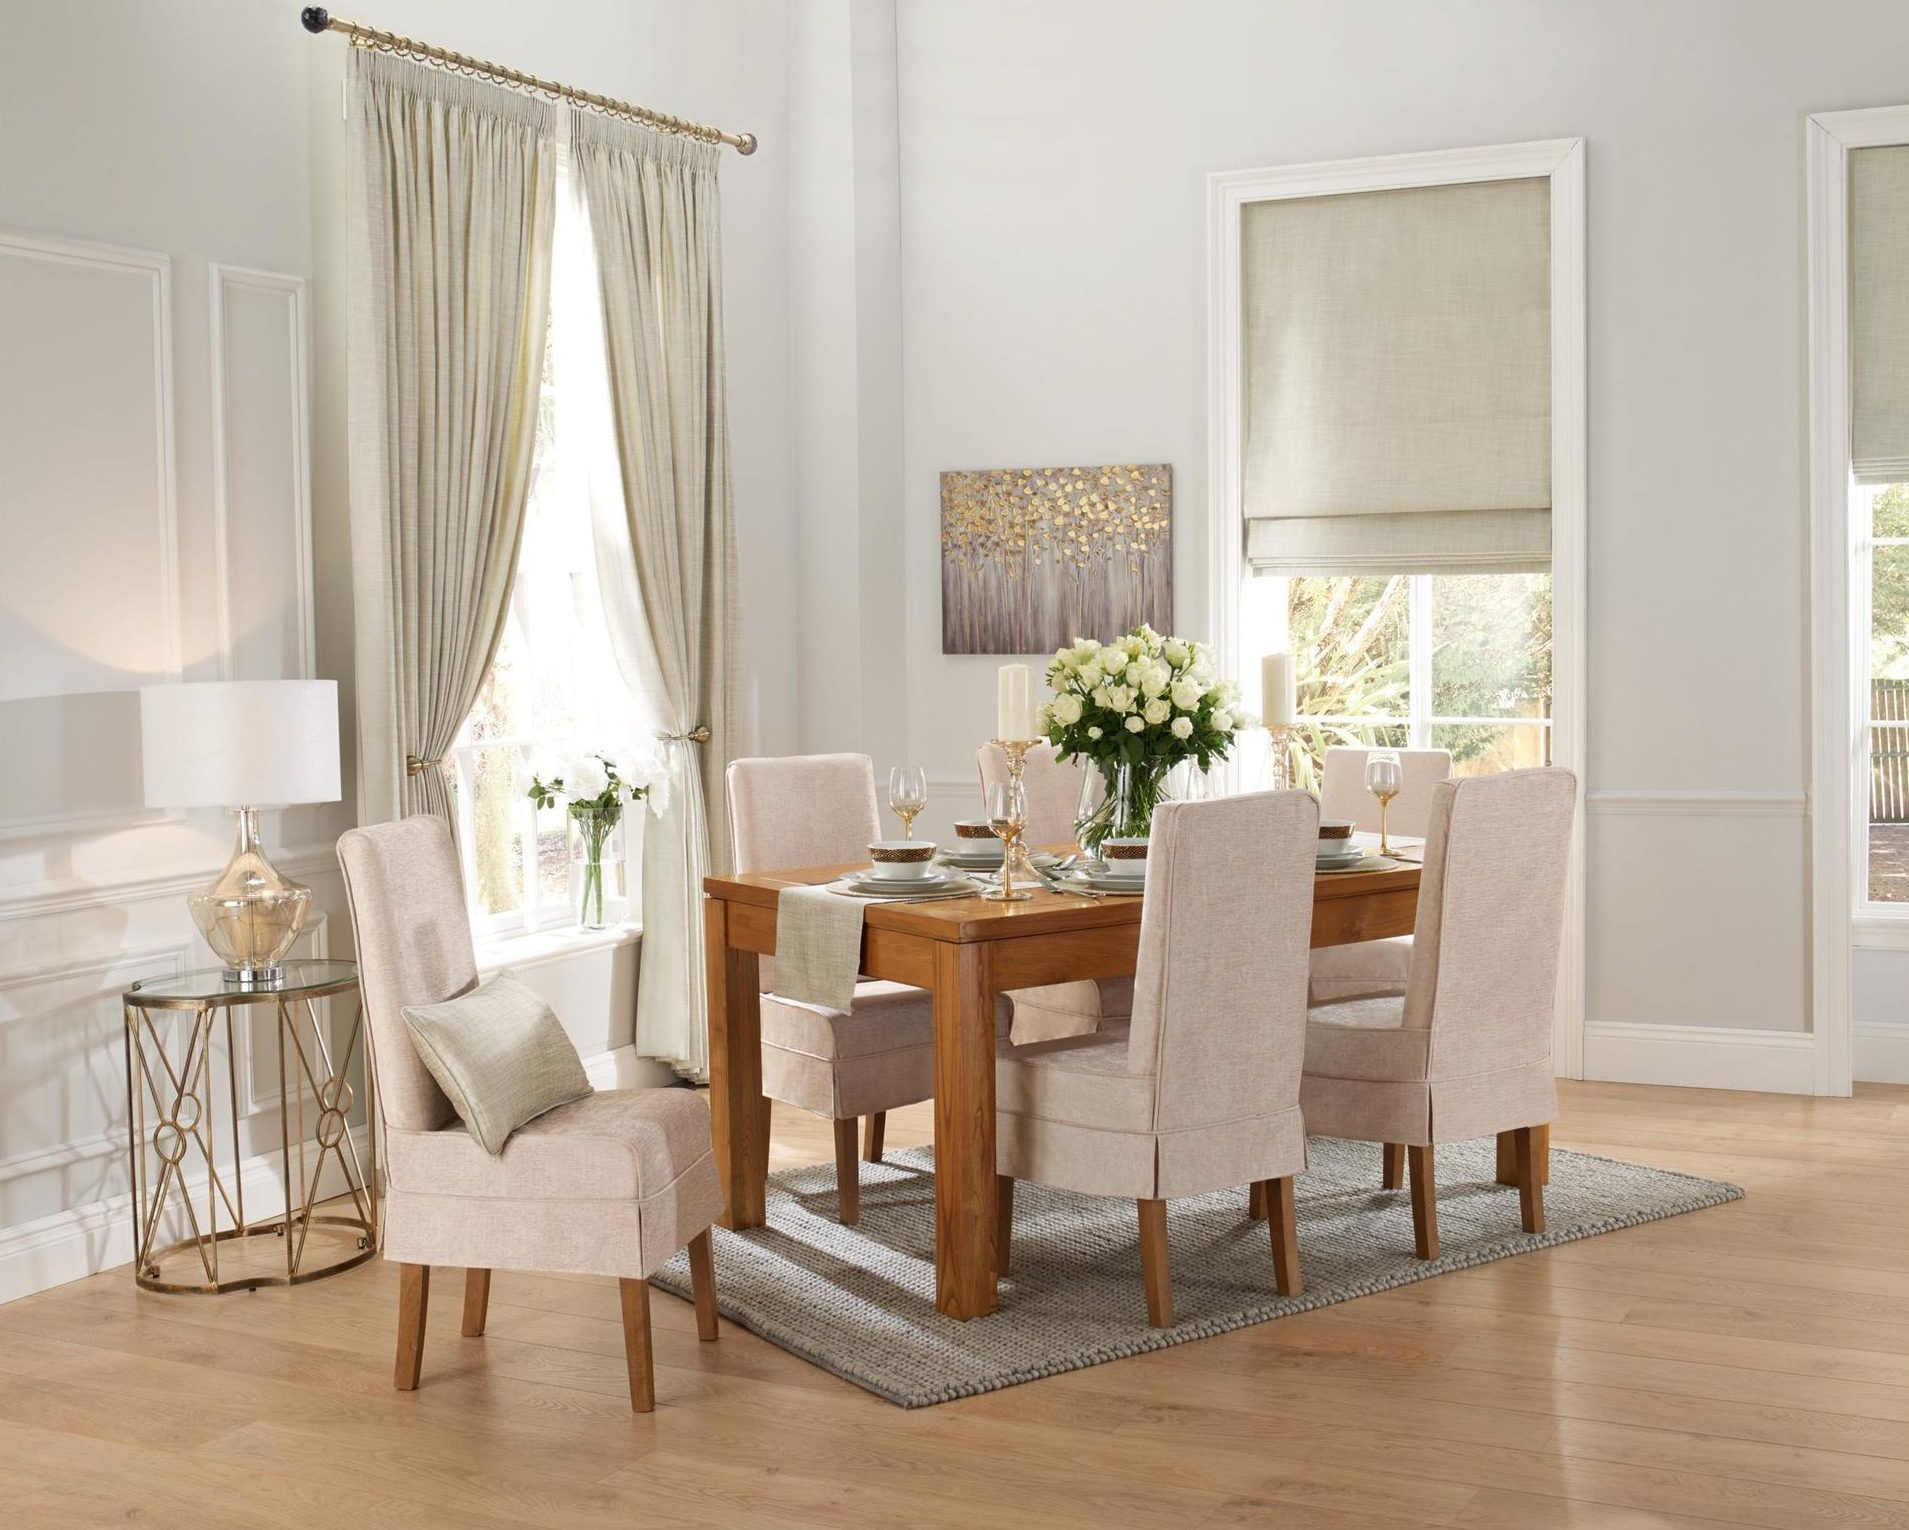 Ennis - Natural, made to measure curtain and blinds